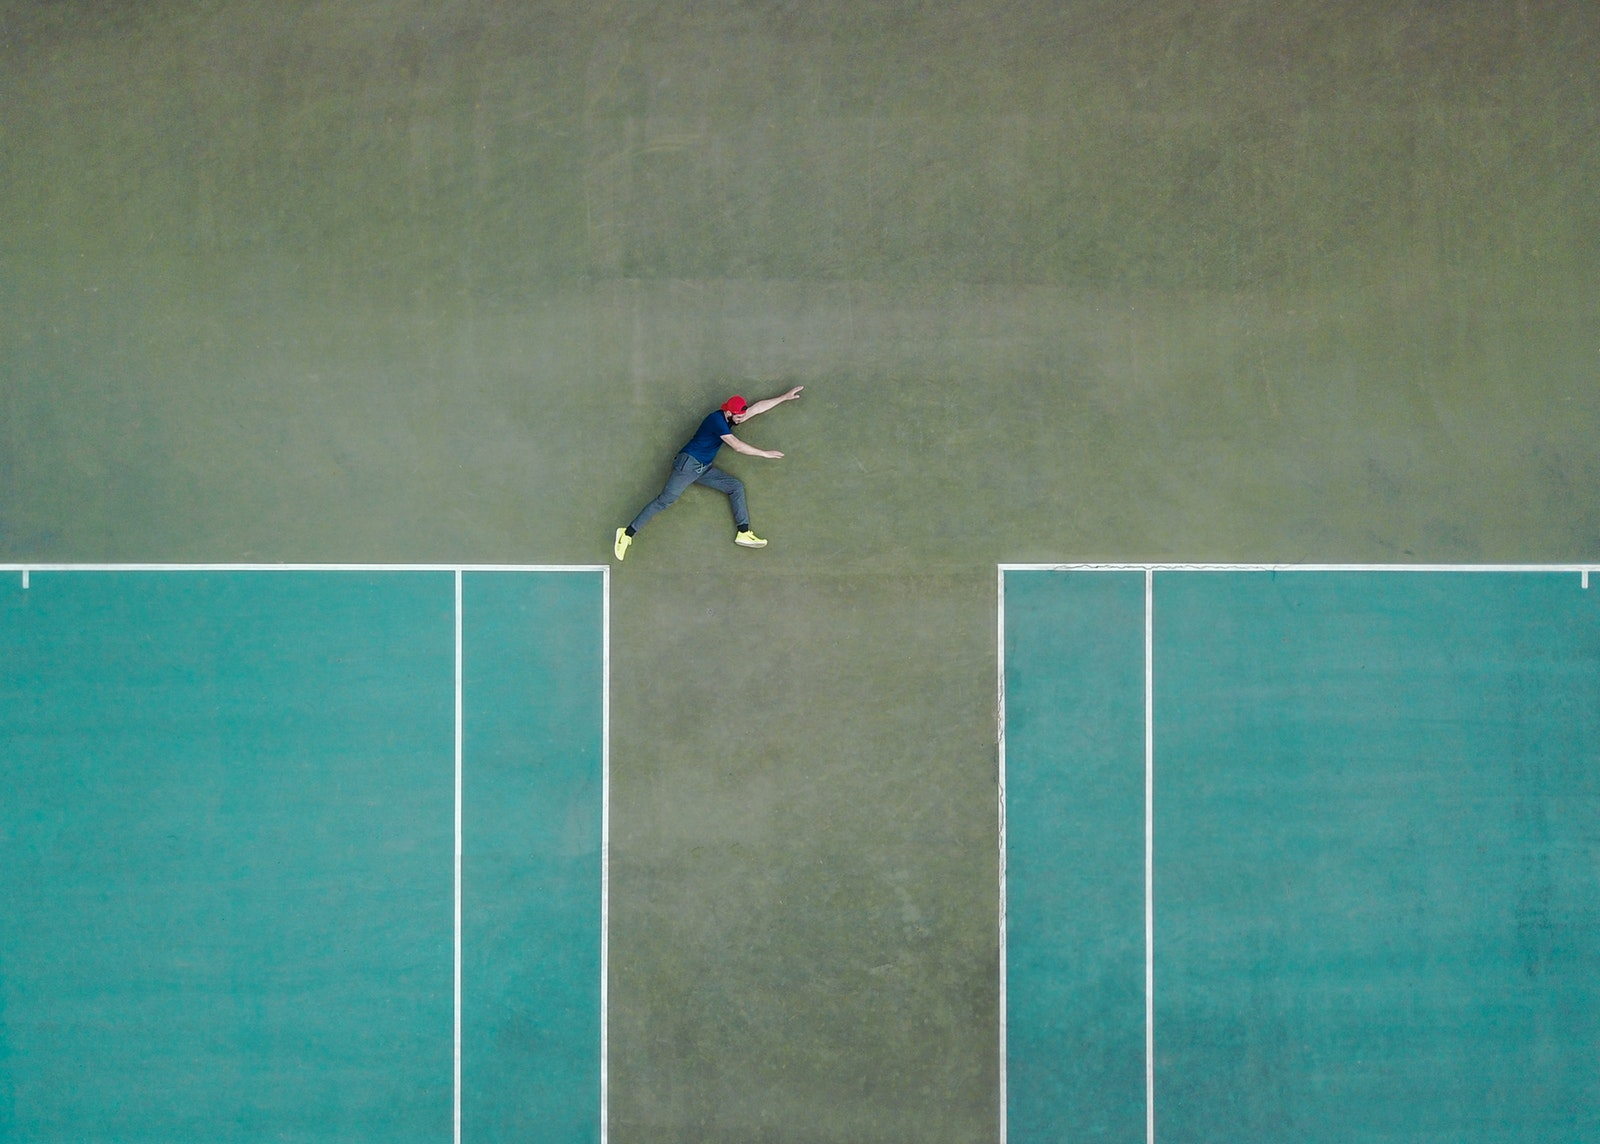 Person pretending to leap between two tennis courts